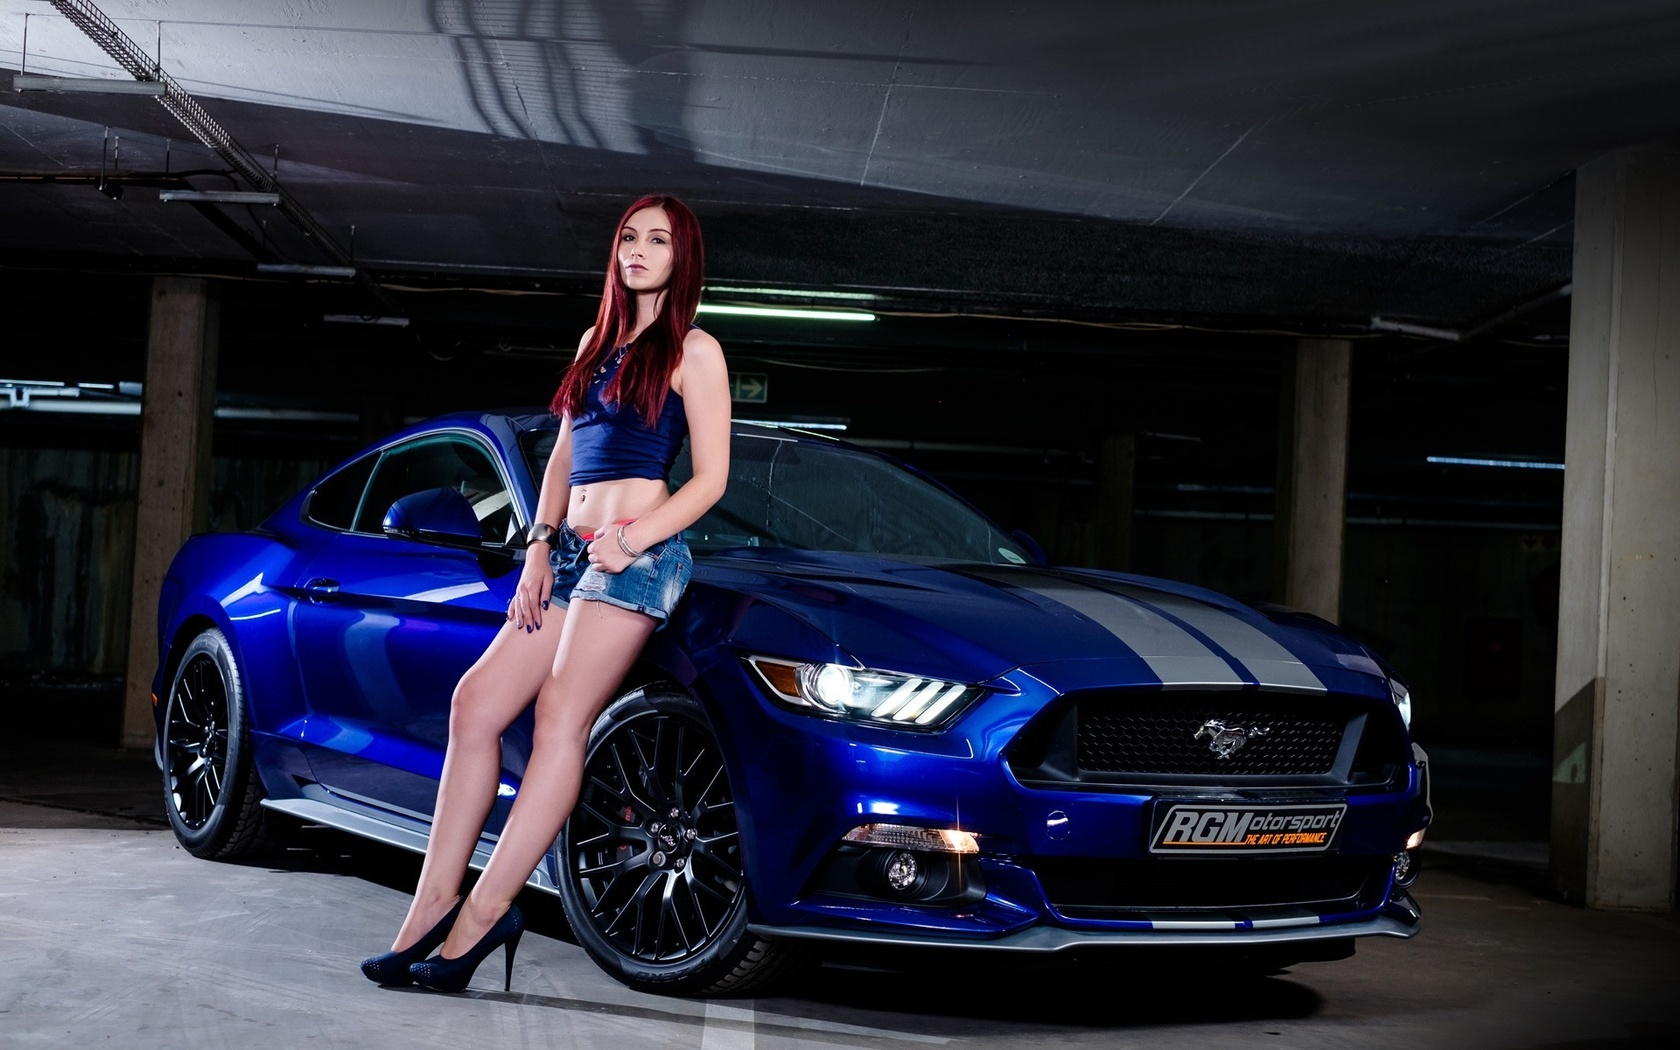 ford, girls, parking, beautiful girl, blue auto, section